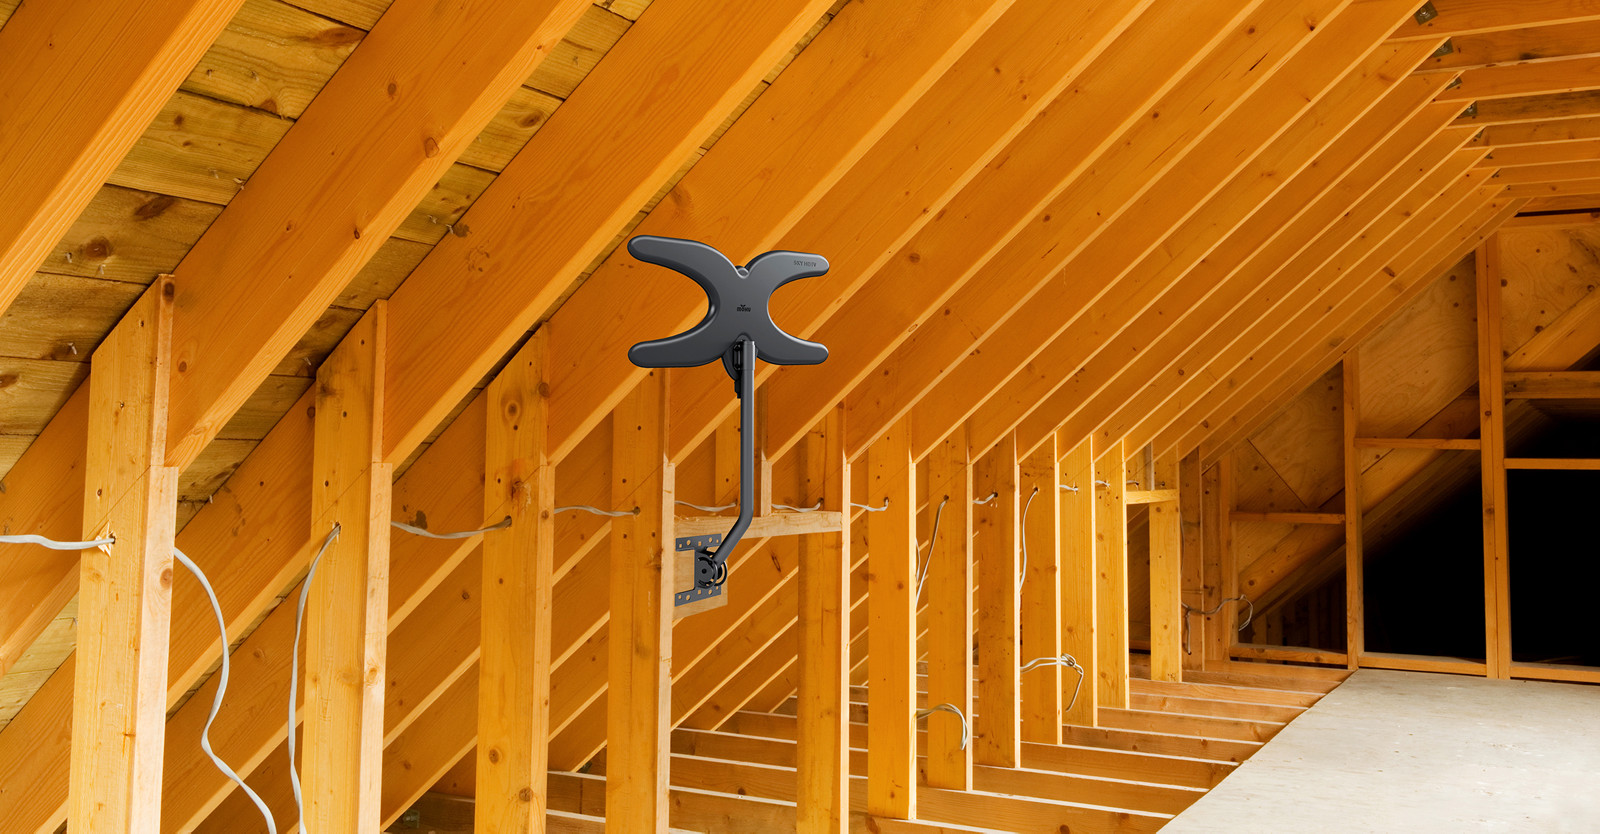 Mohu Sky antenna mounted in an attic